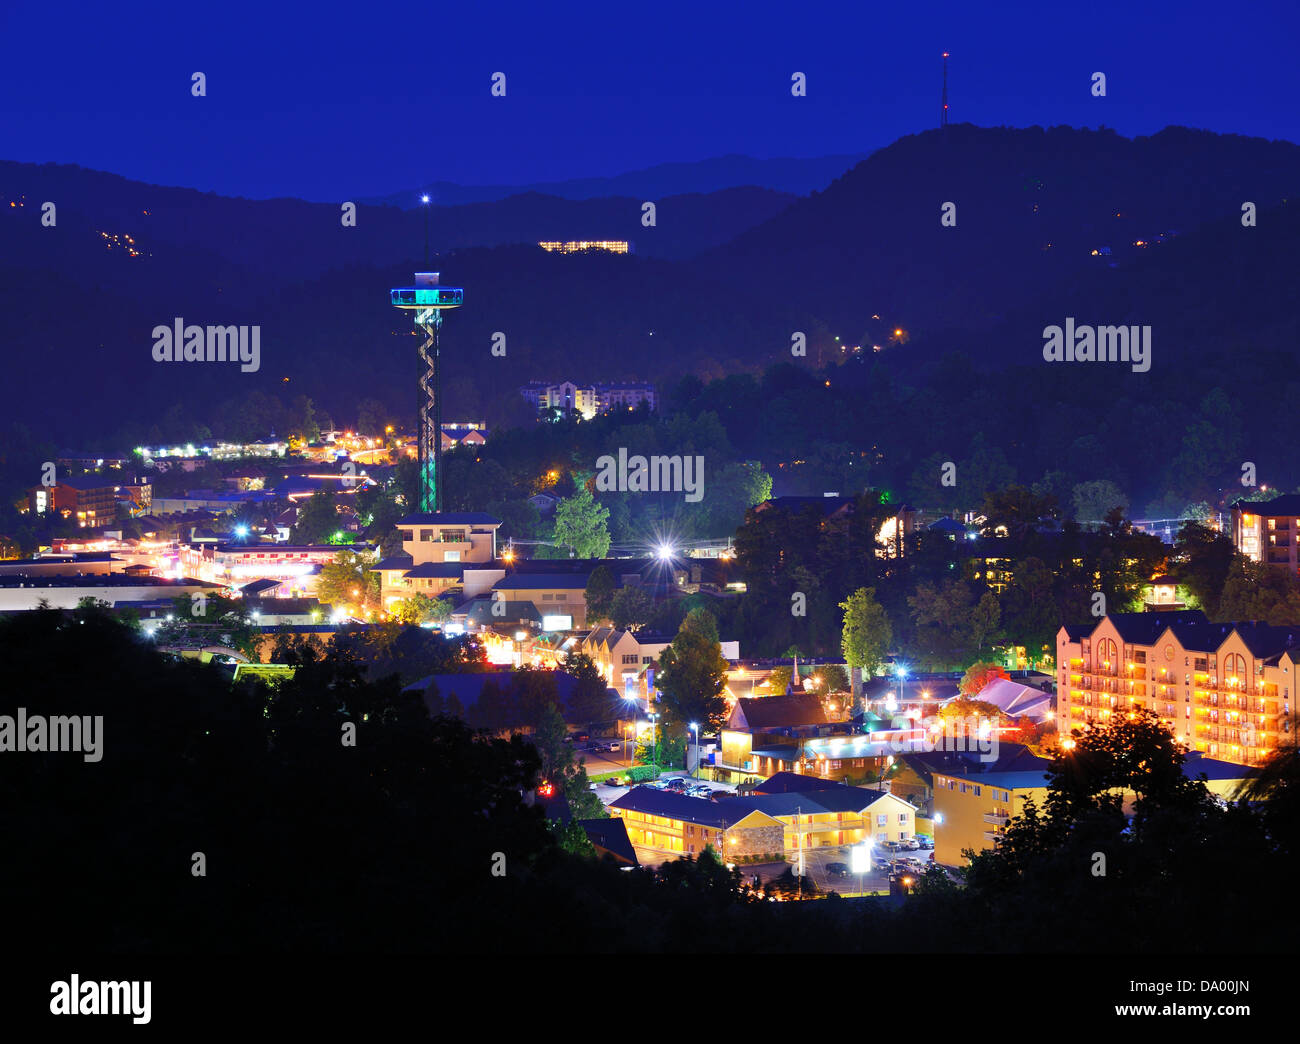 The skyline of downtown Gatlinburg, Tennessee, USA in the Great Smoky Mountains. - Stock Image